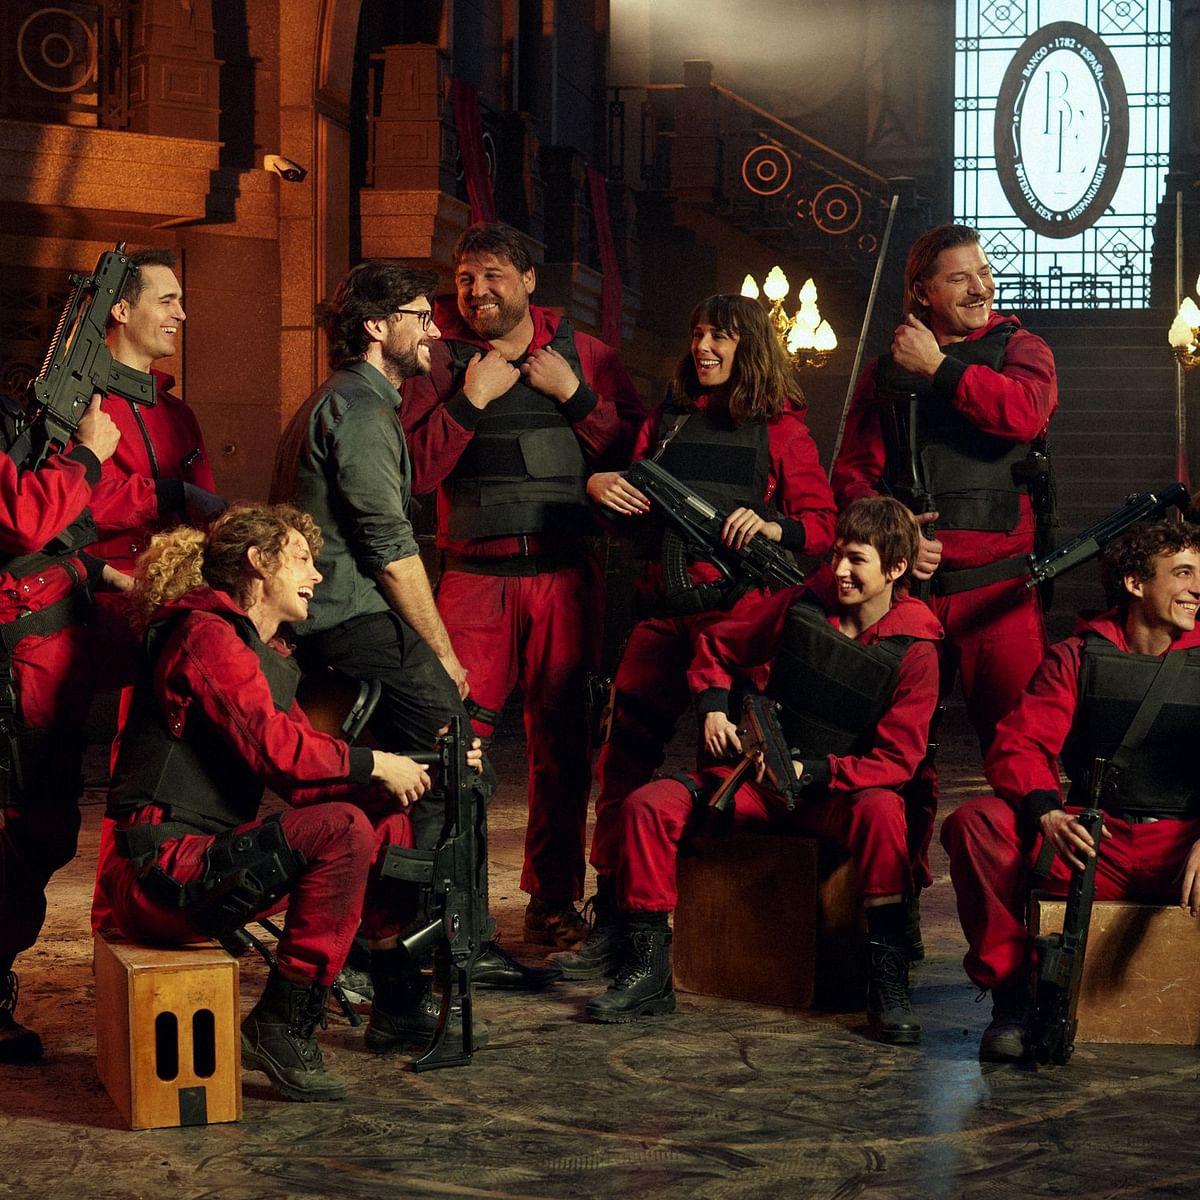 'Bella na jao': It's a wrap for 'Money Heist' fifth and final season; Netflix says 'can't wait to show how it ends'